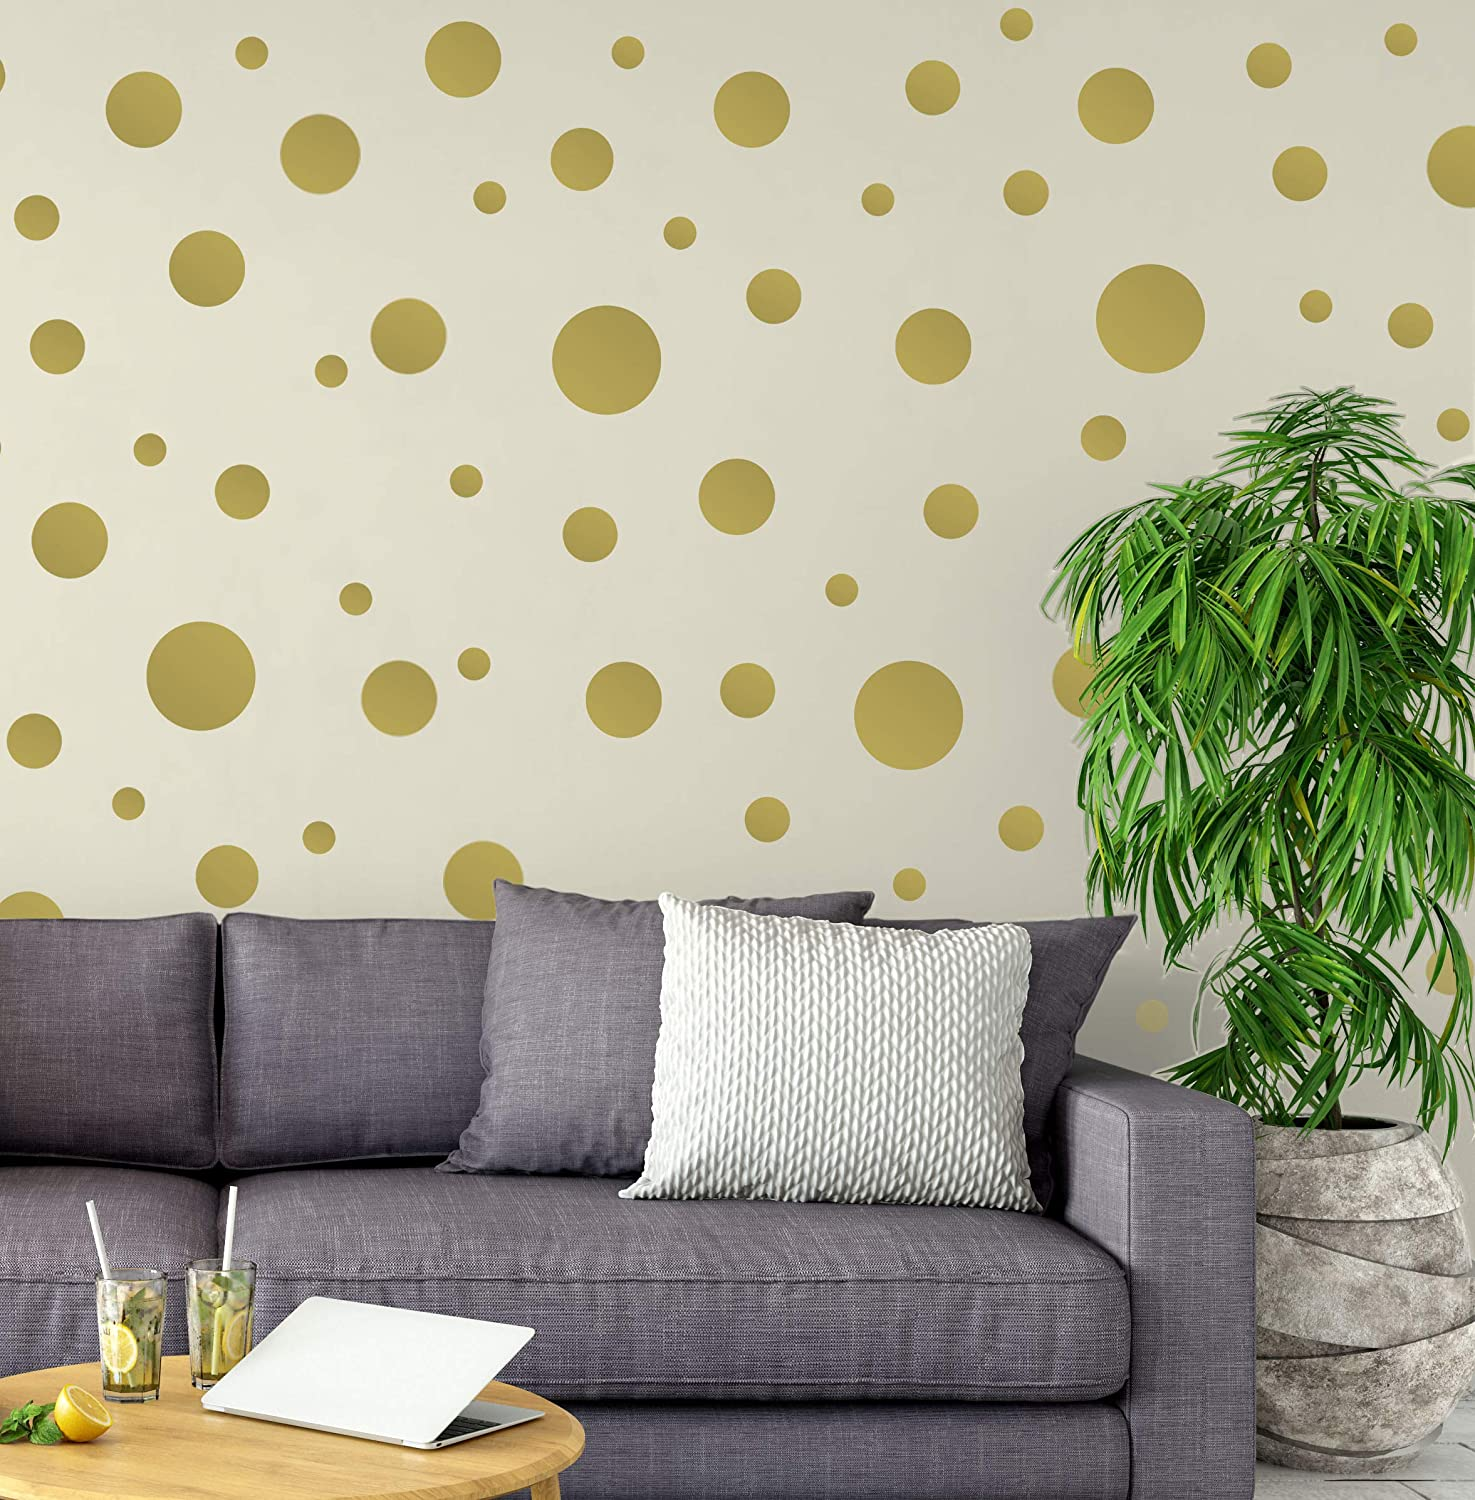 Create-A-Mural Polka Dot Wall Stickers, Wall Decor Stickers, Wall Dots, Vinyl Circle Room Dot Decals Wall Art Stickers for Bedroom Girls Room Peel and Stick Kids Room Decor Birthday Gift (Gold)